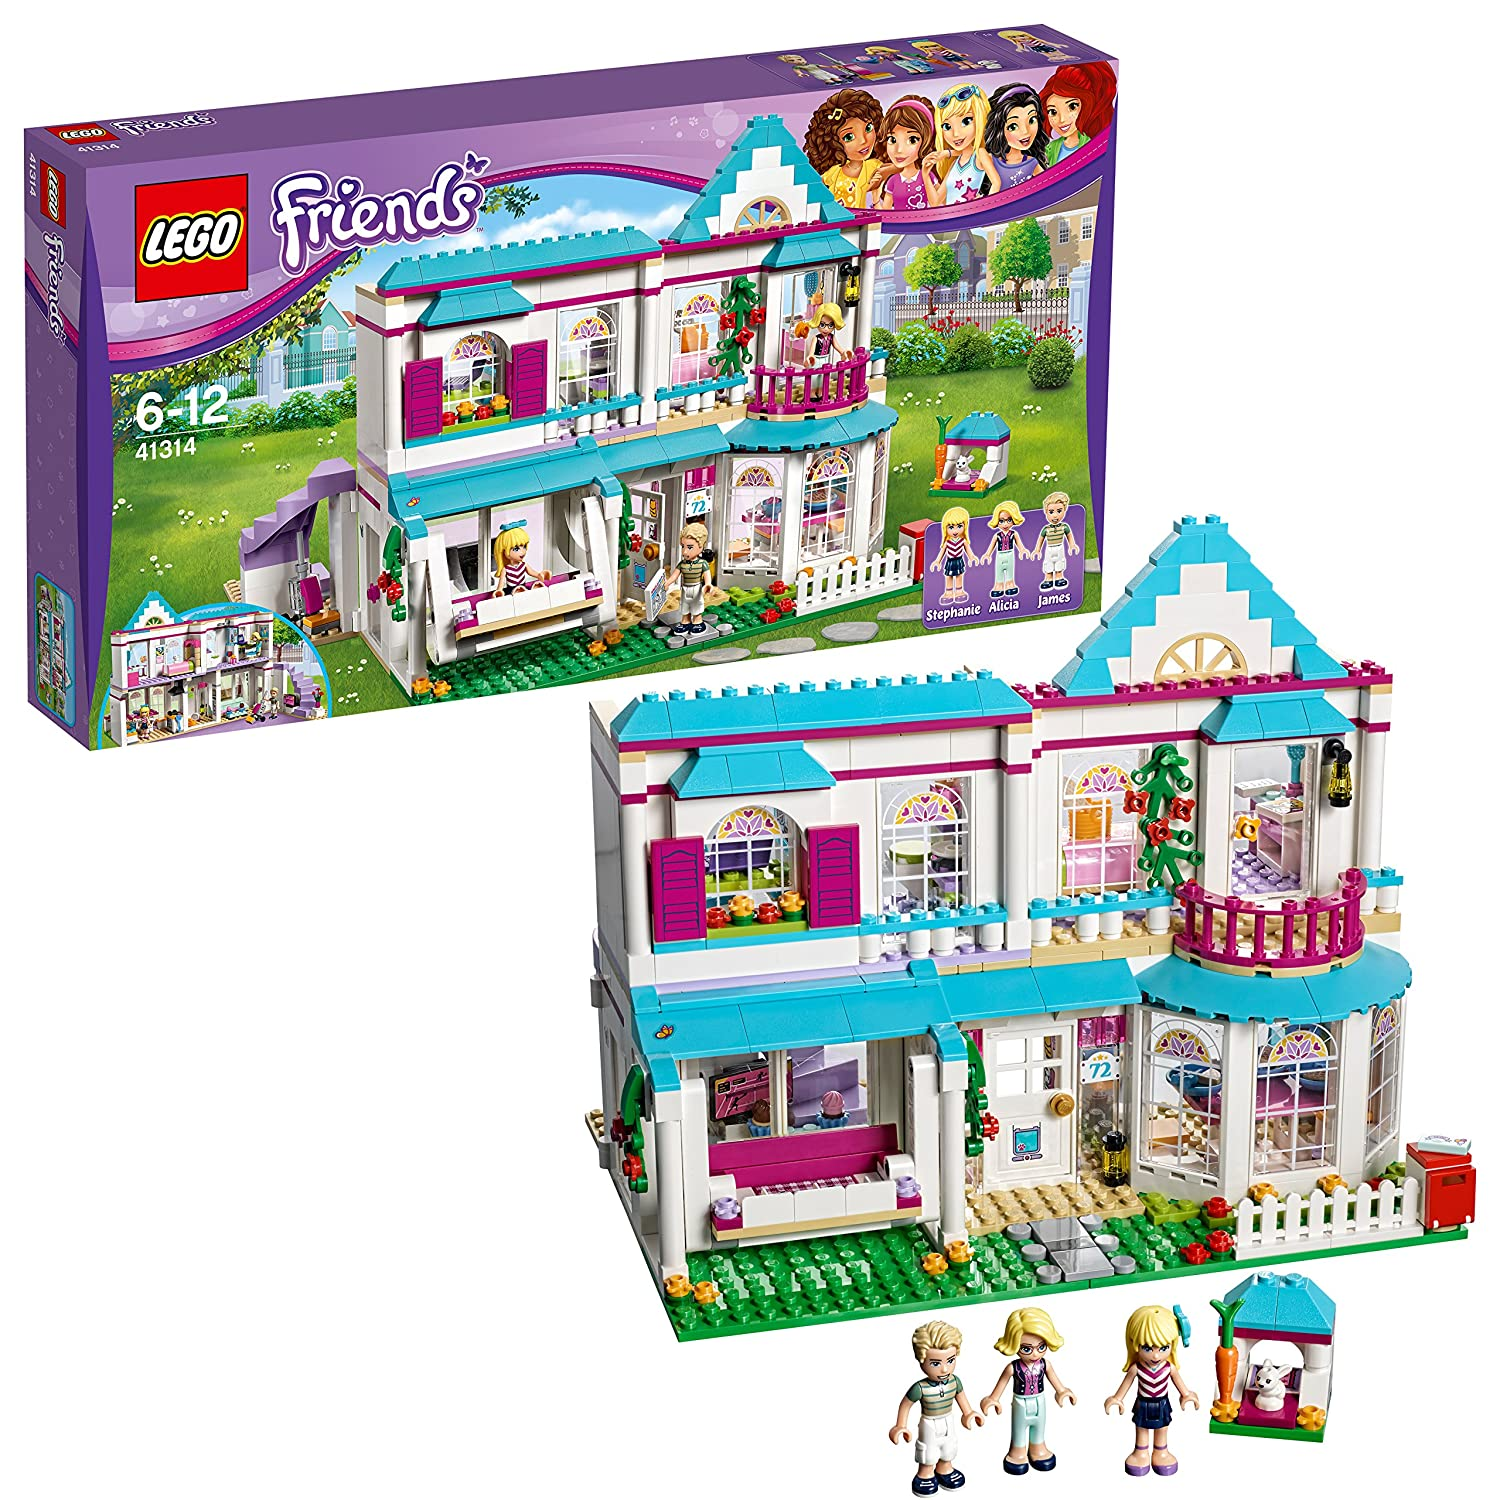 Lego 41314 Friends Heartlake City Stephanies House Building Set